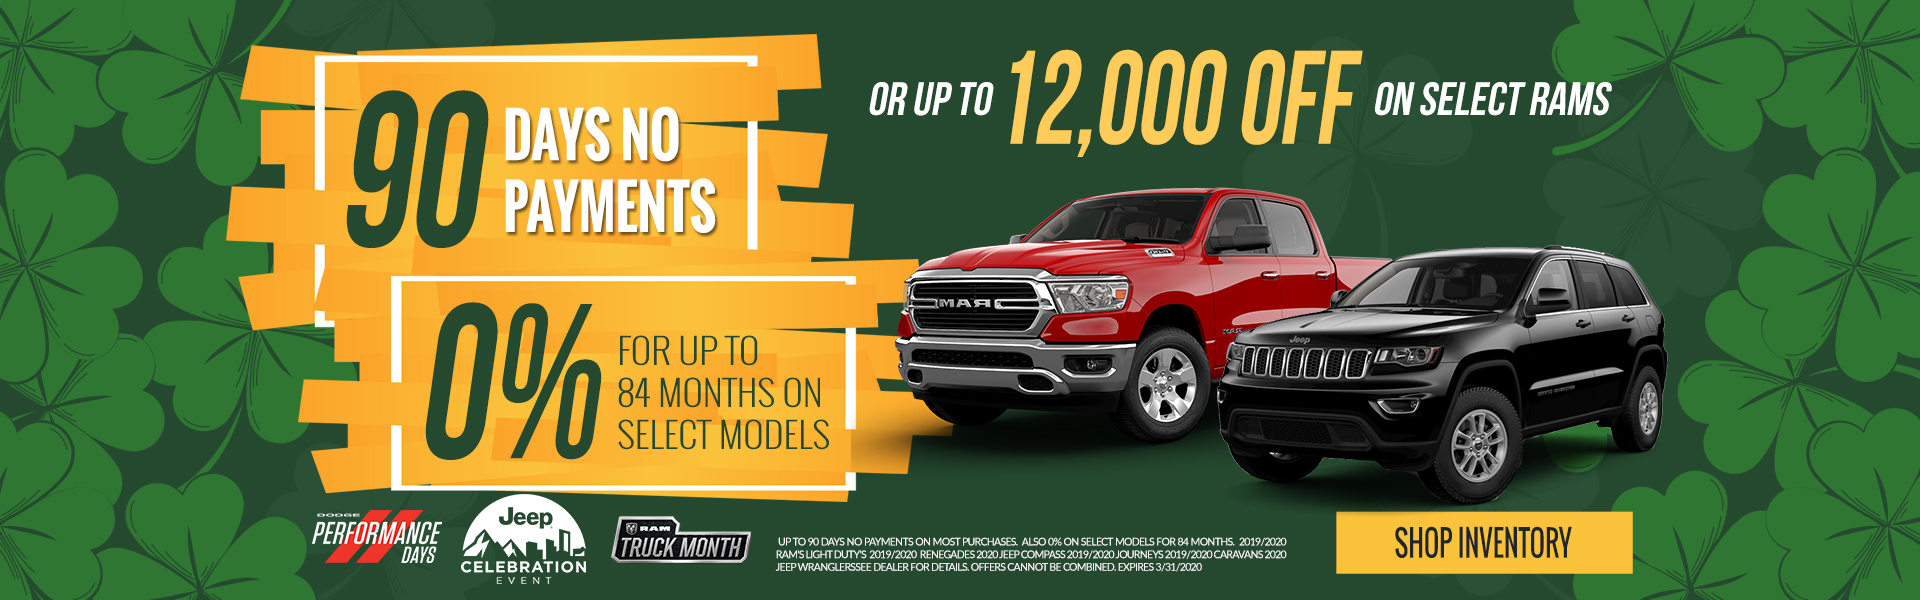 0% for up to 84 months on select models.  Up to 90 days no payments or up to 12K off on select Rams.